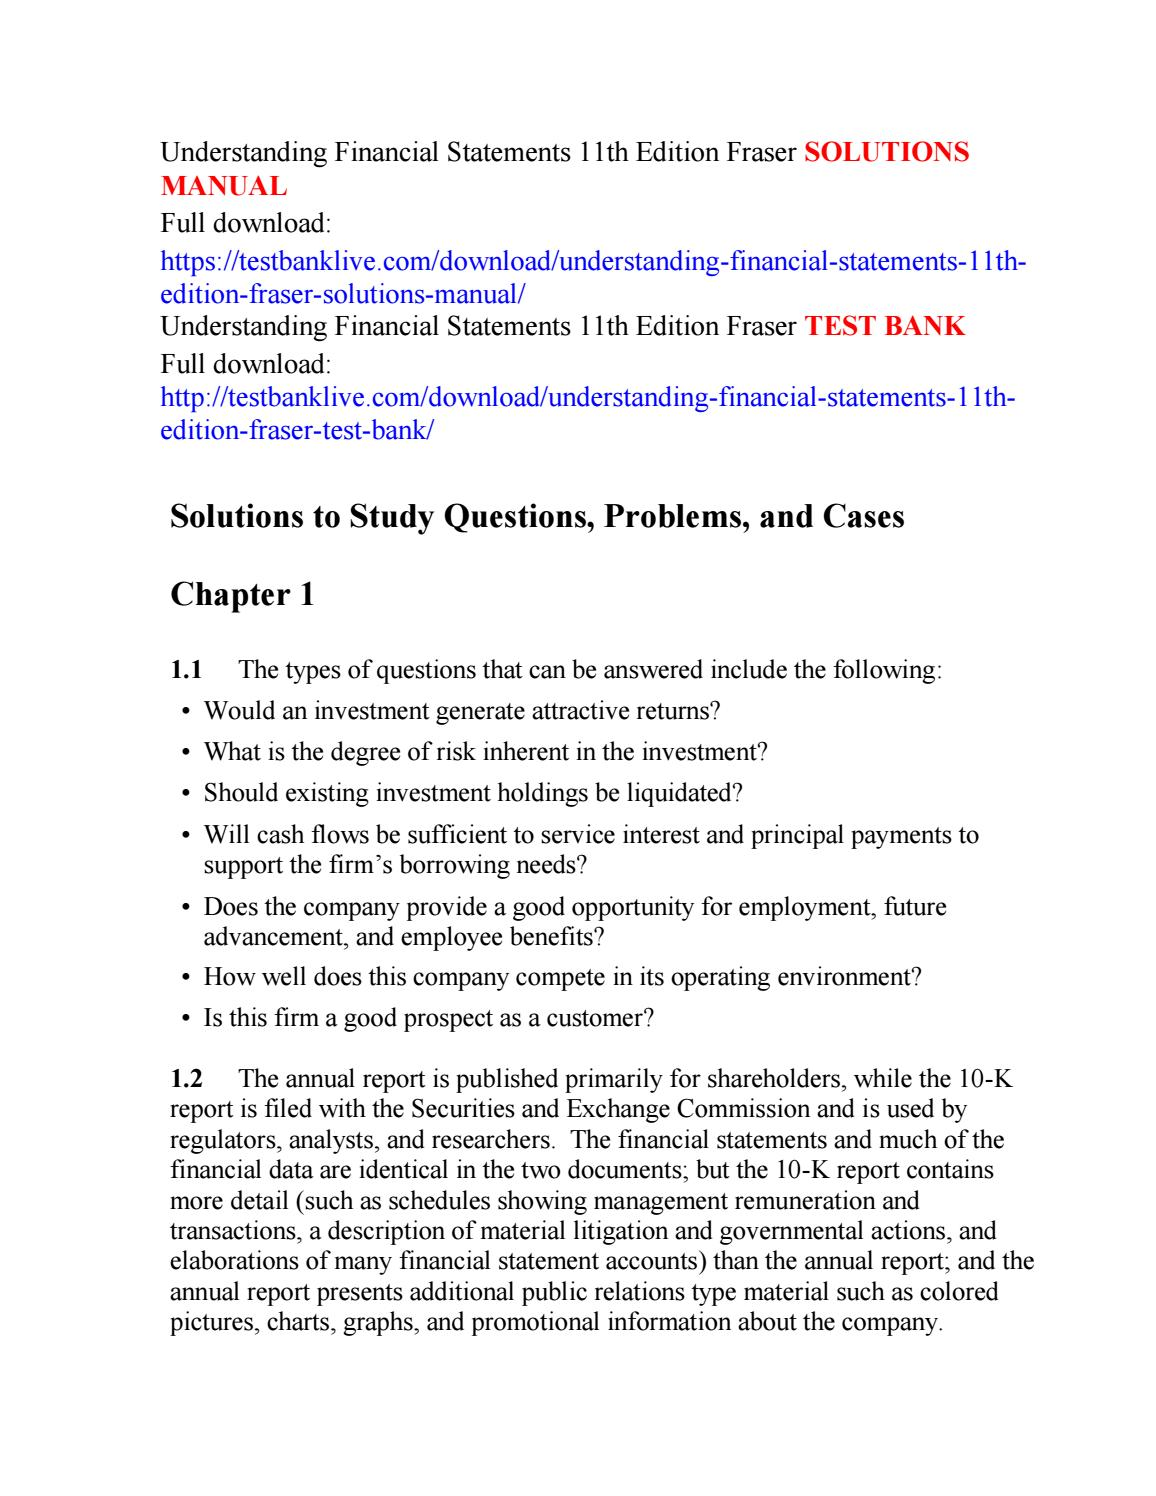 Understanding financial statements 11th edition fraser solutions manual by  qkqk111 - issuu